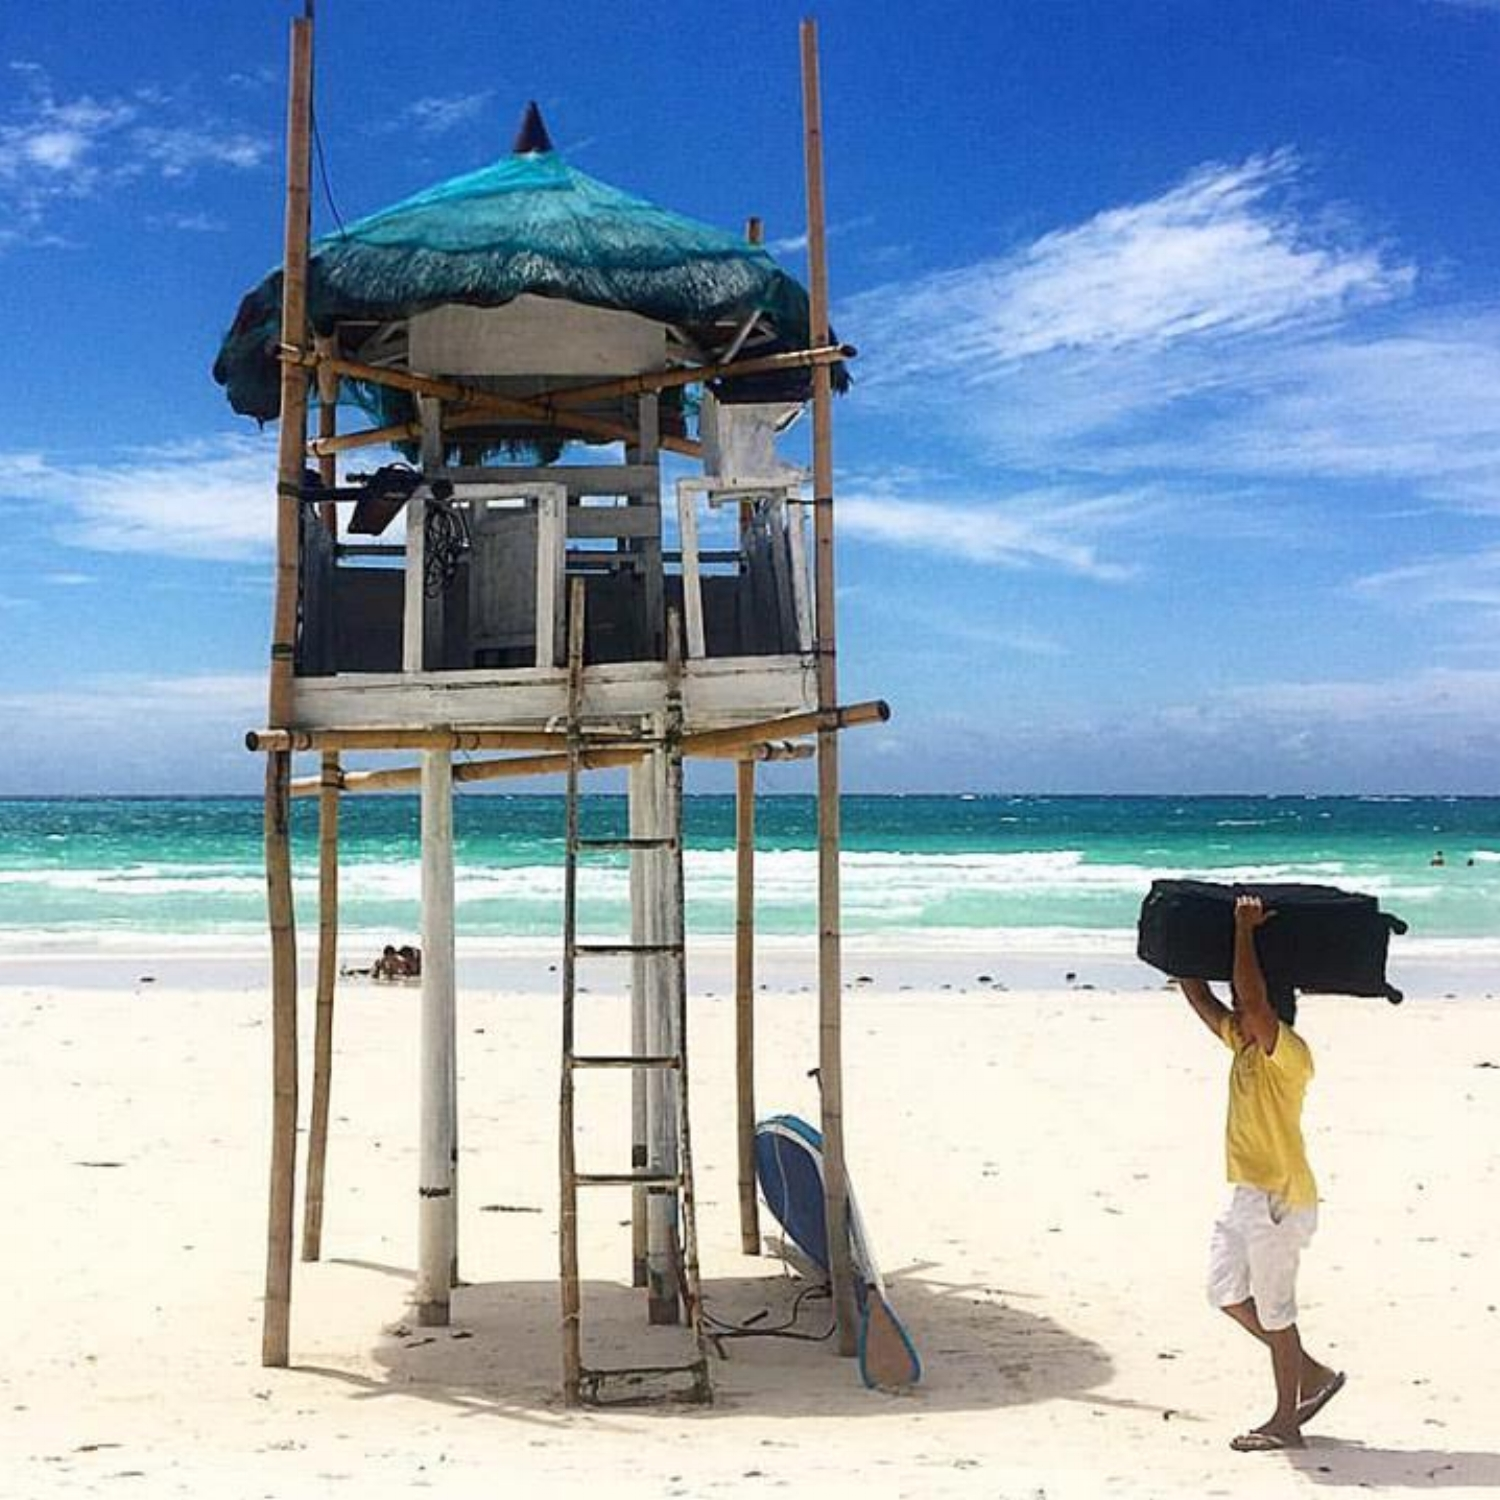 Kargador (Porter) - Helping tourists of Boracay Island, Philippines